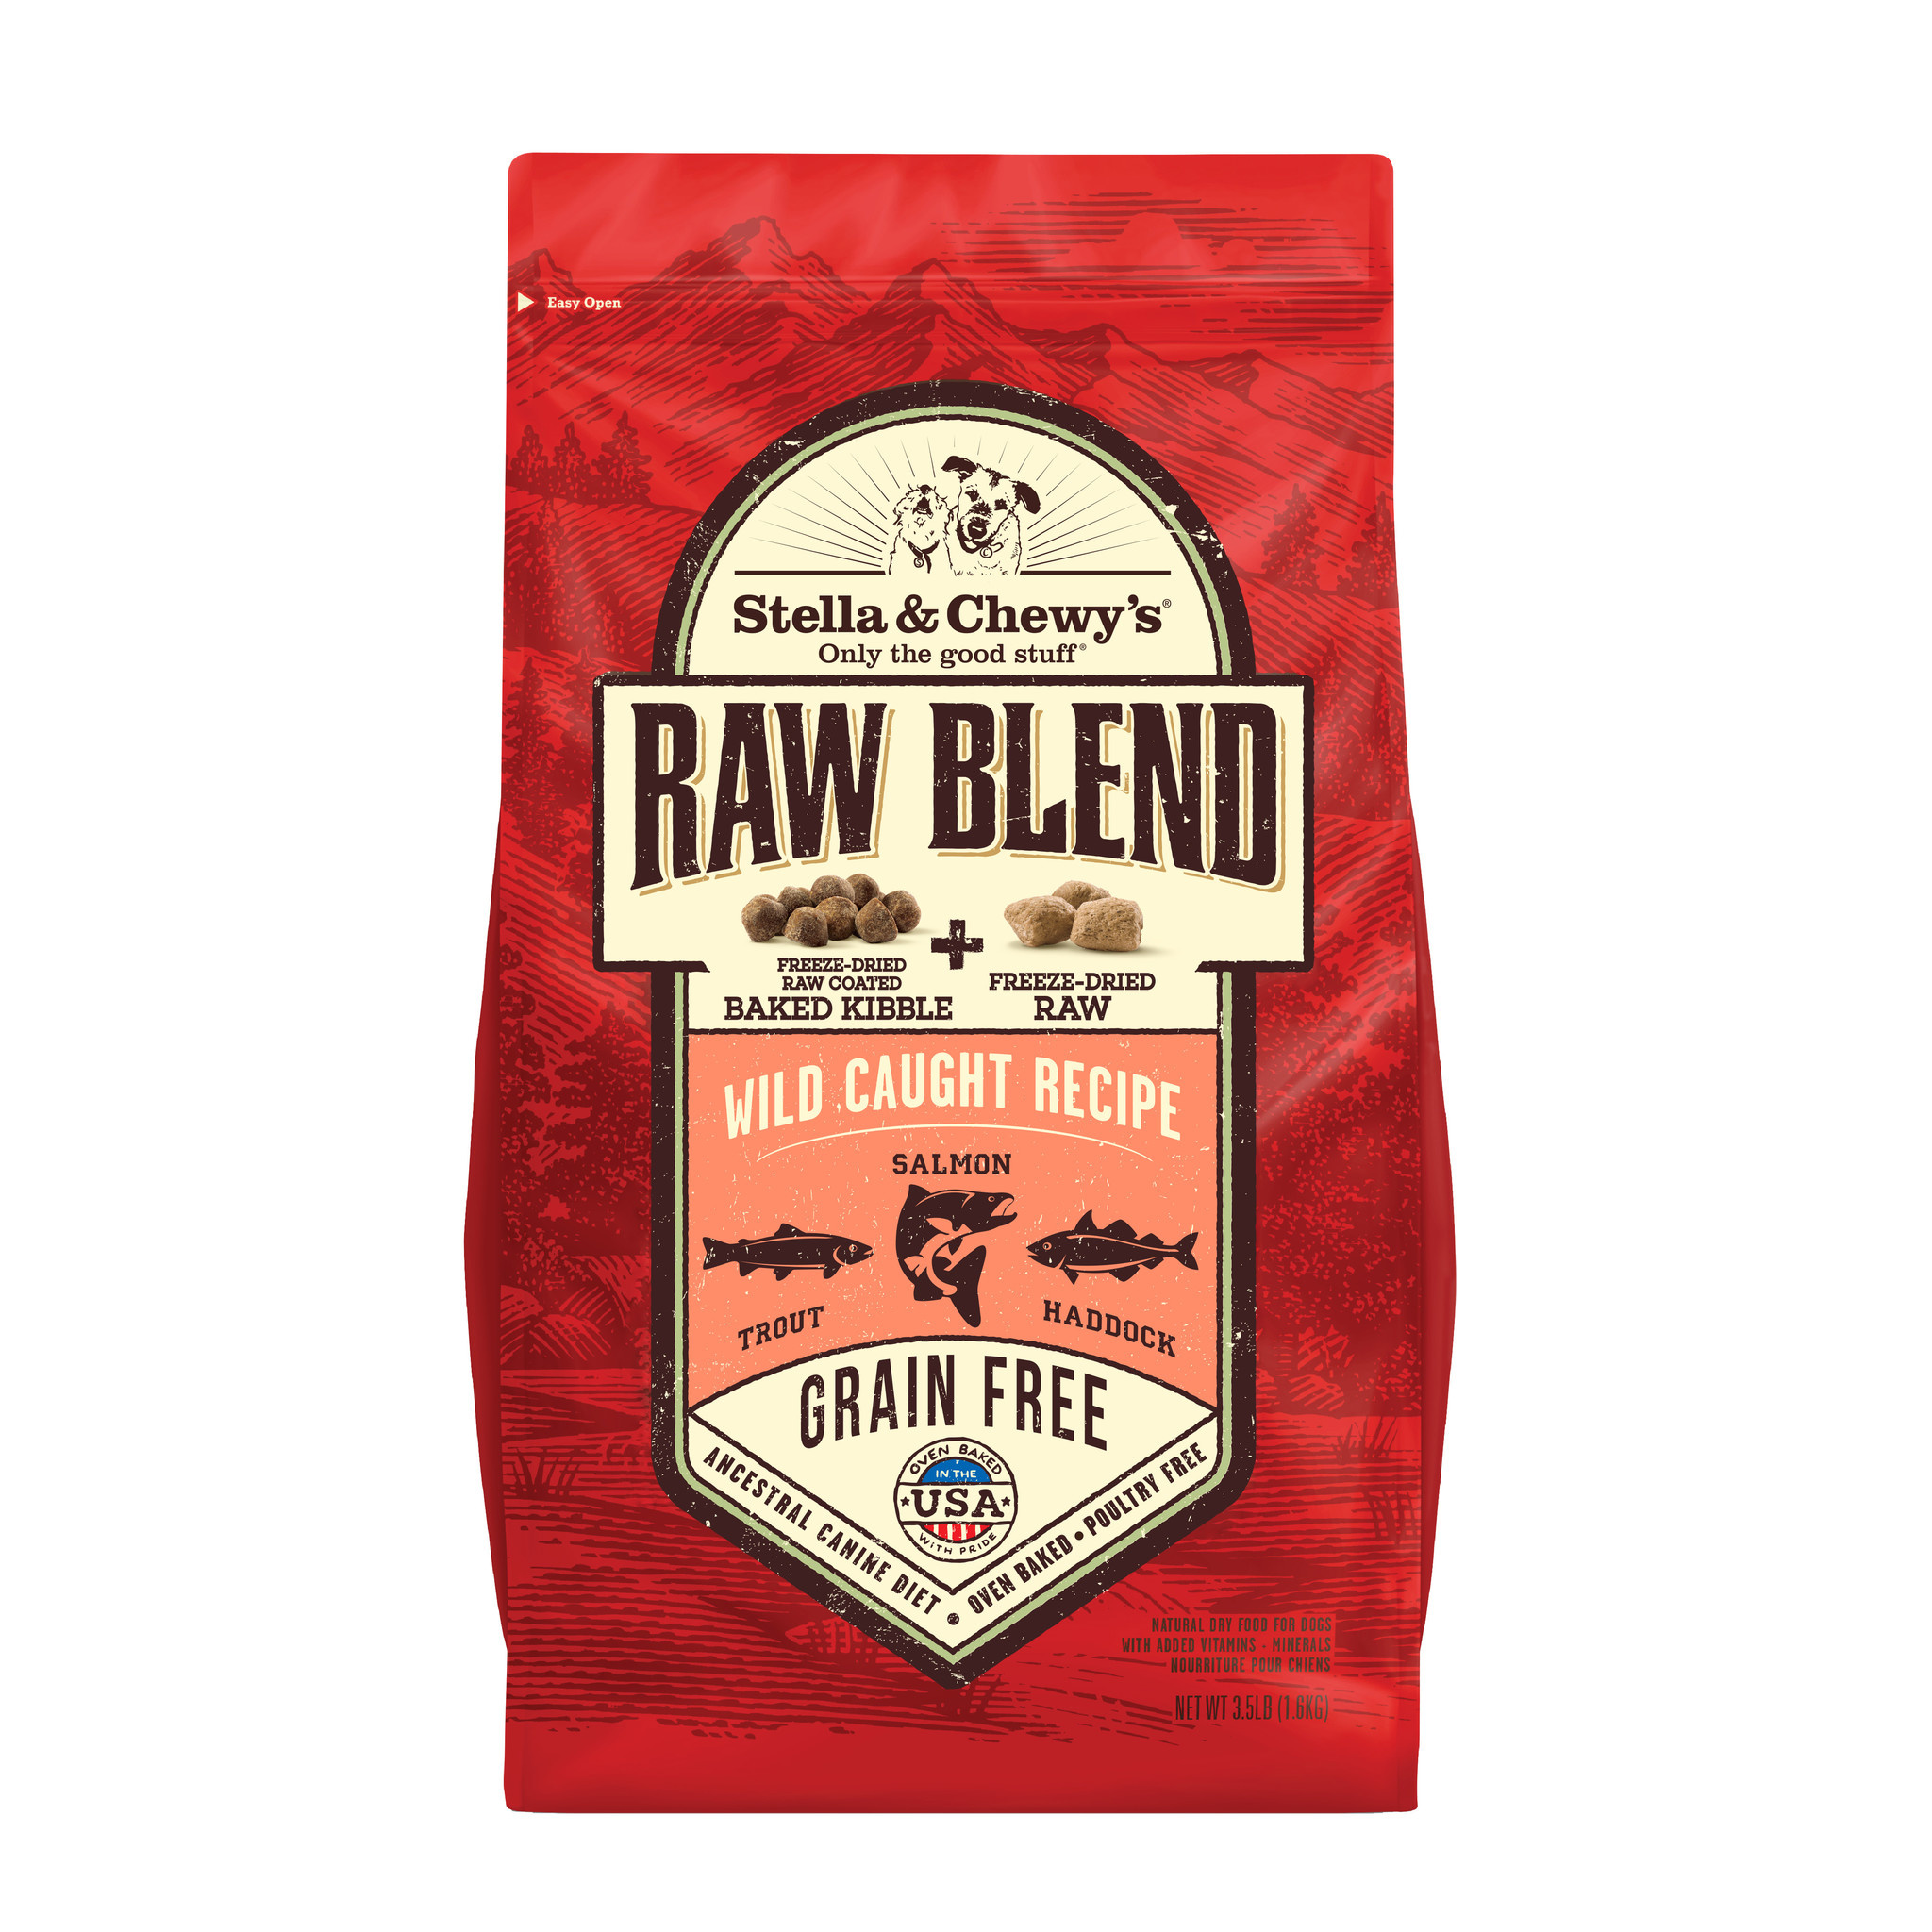 Stella & Chewys Stella & Chewy's Raw Blend Wild Caught 3.5lb